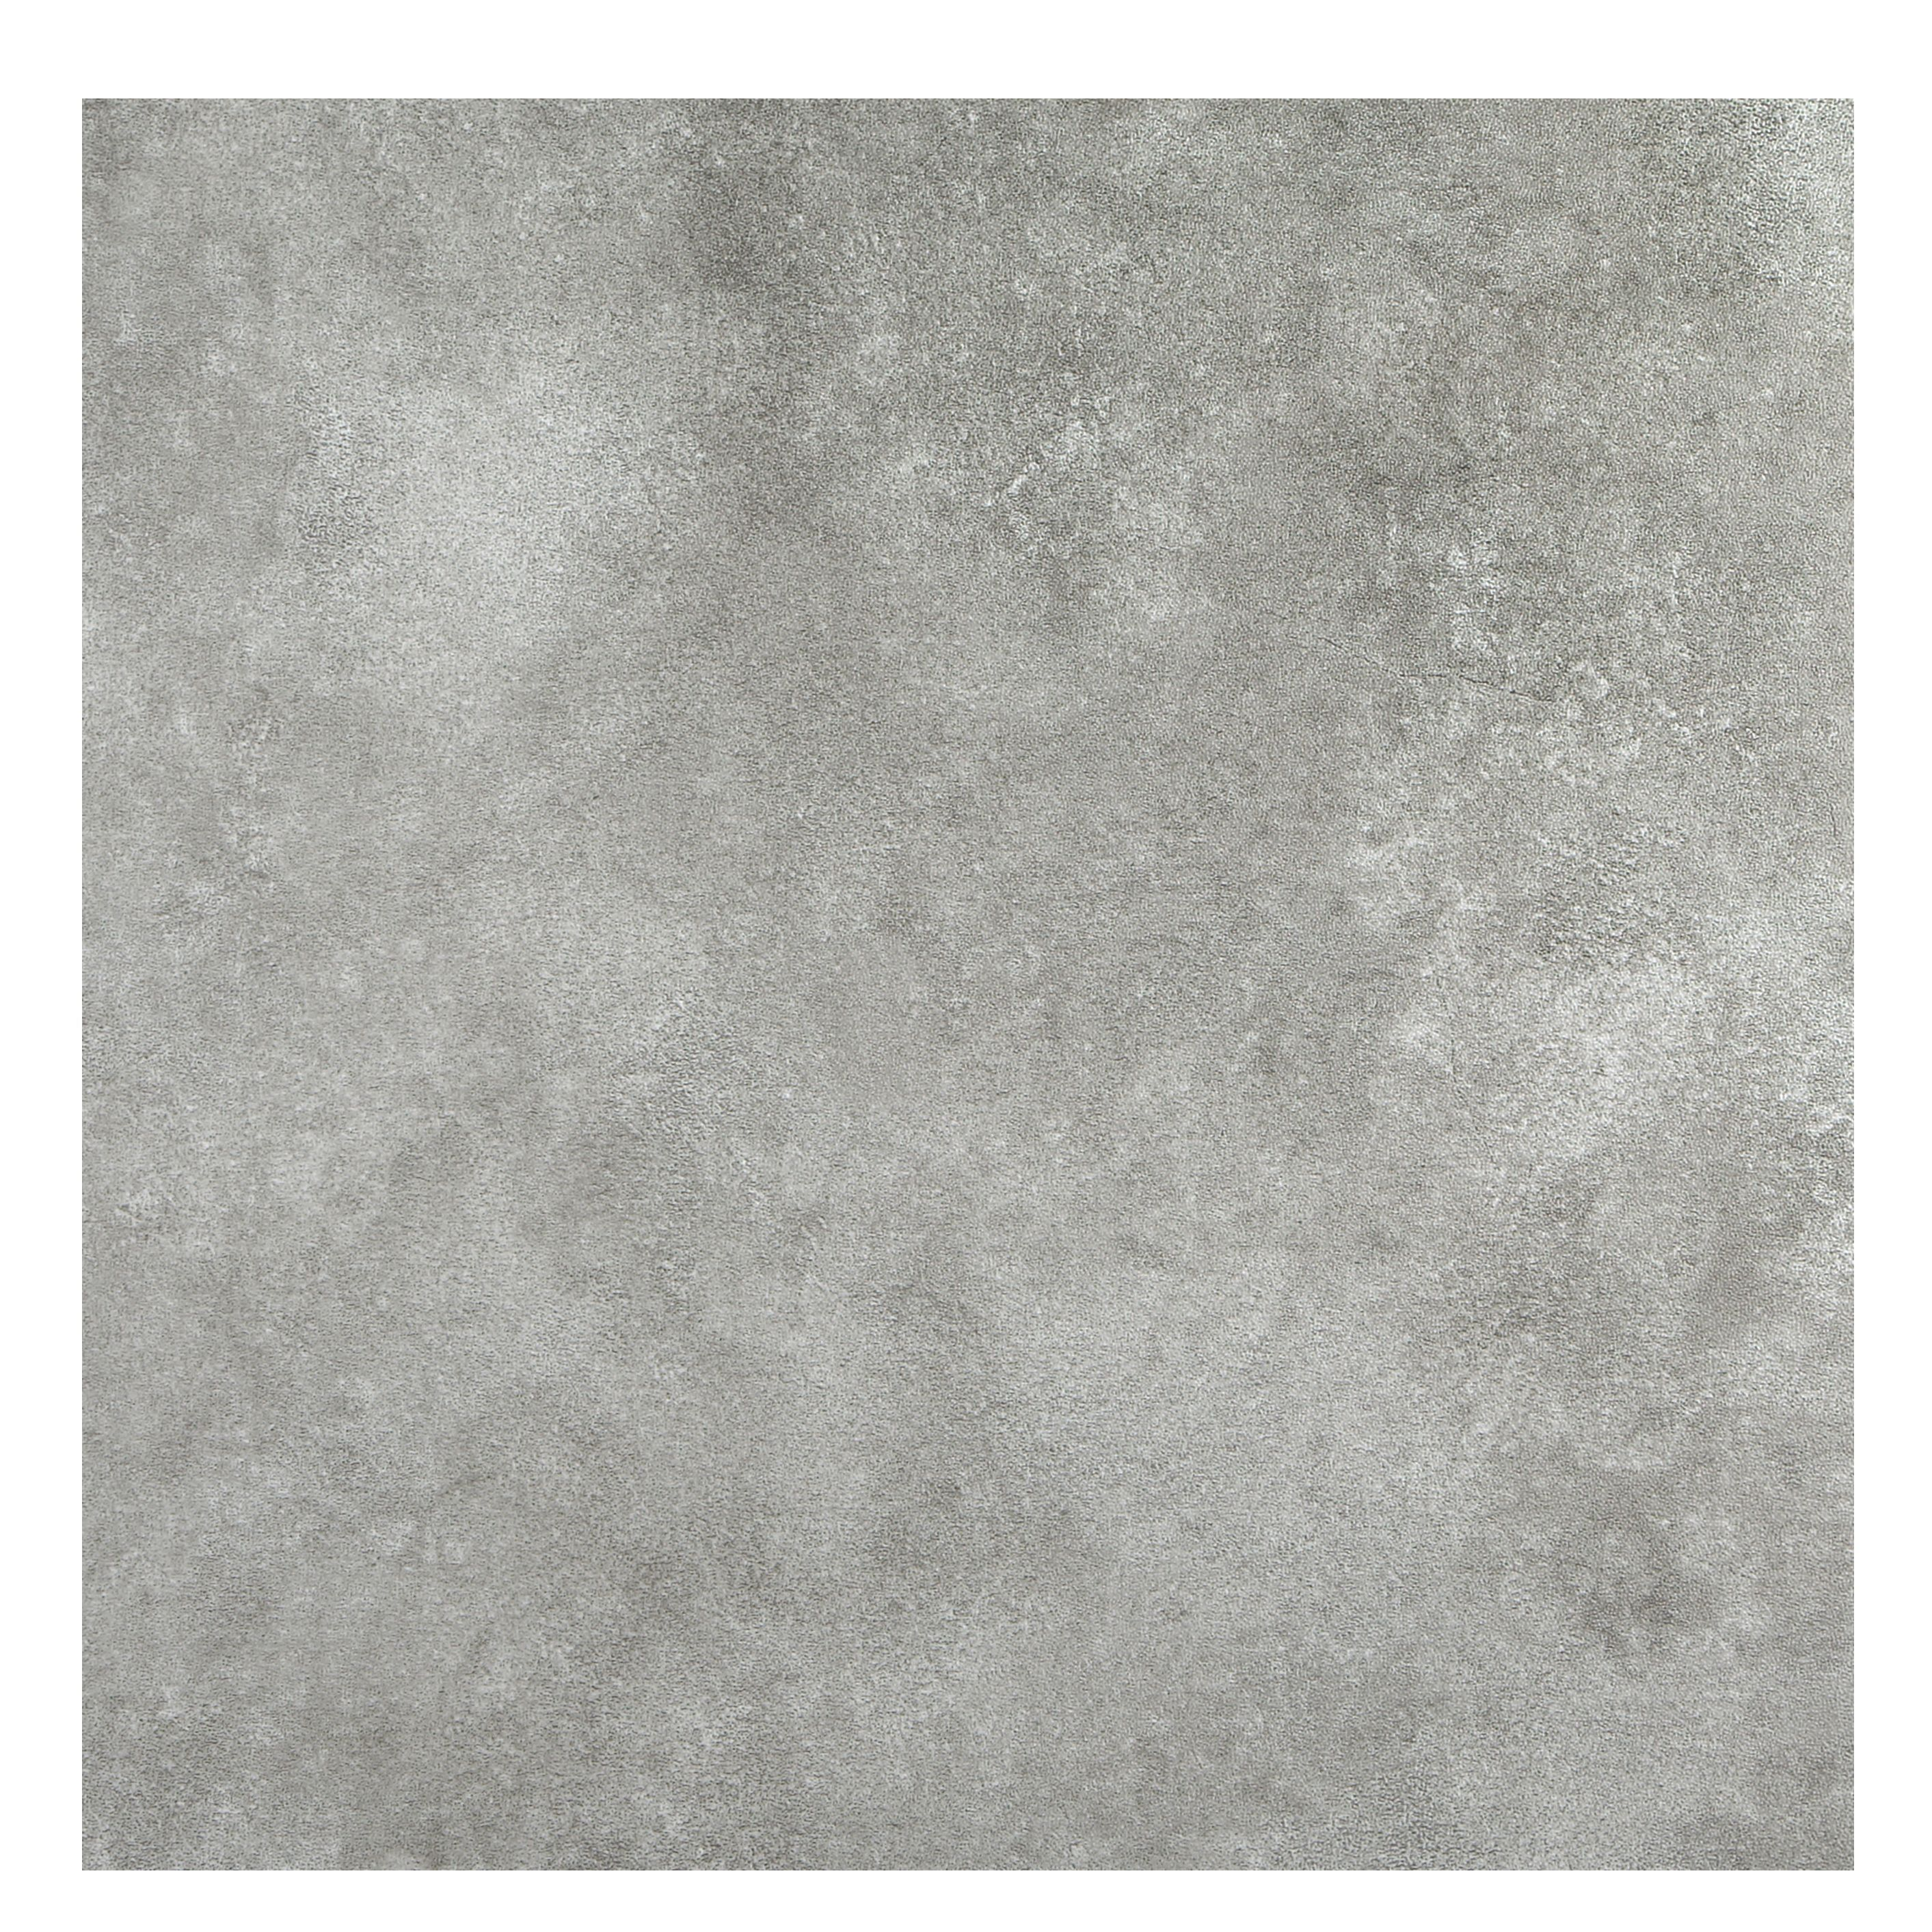 Colours Grey Stone Effect Self Adhesive Vinyl Tile Pack 1